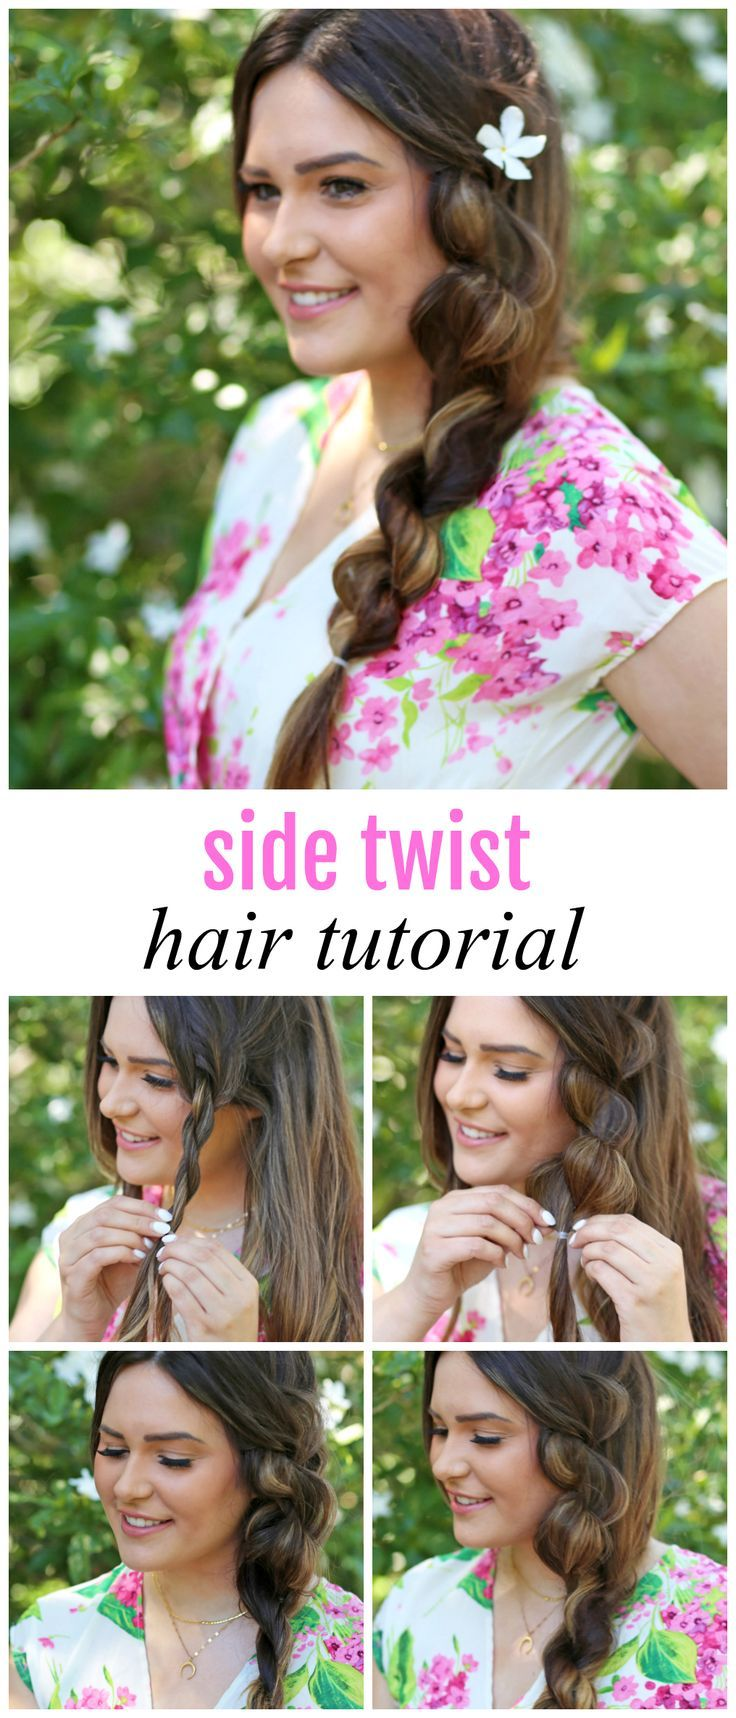 So easy to re-create! // Popular Orlando blogger Michelle Kehoe of Mash Elle shares how to create a side twist in under 10 minutes! This quick and easy hairstyle for long and short hair is perfect for a casual or dressy look! / ad @haircuttery Similar to a braid, this twist will steal the show! #hairstyle #longhair #twist #balayage #hairstylesforwomen